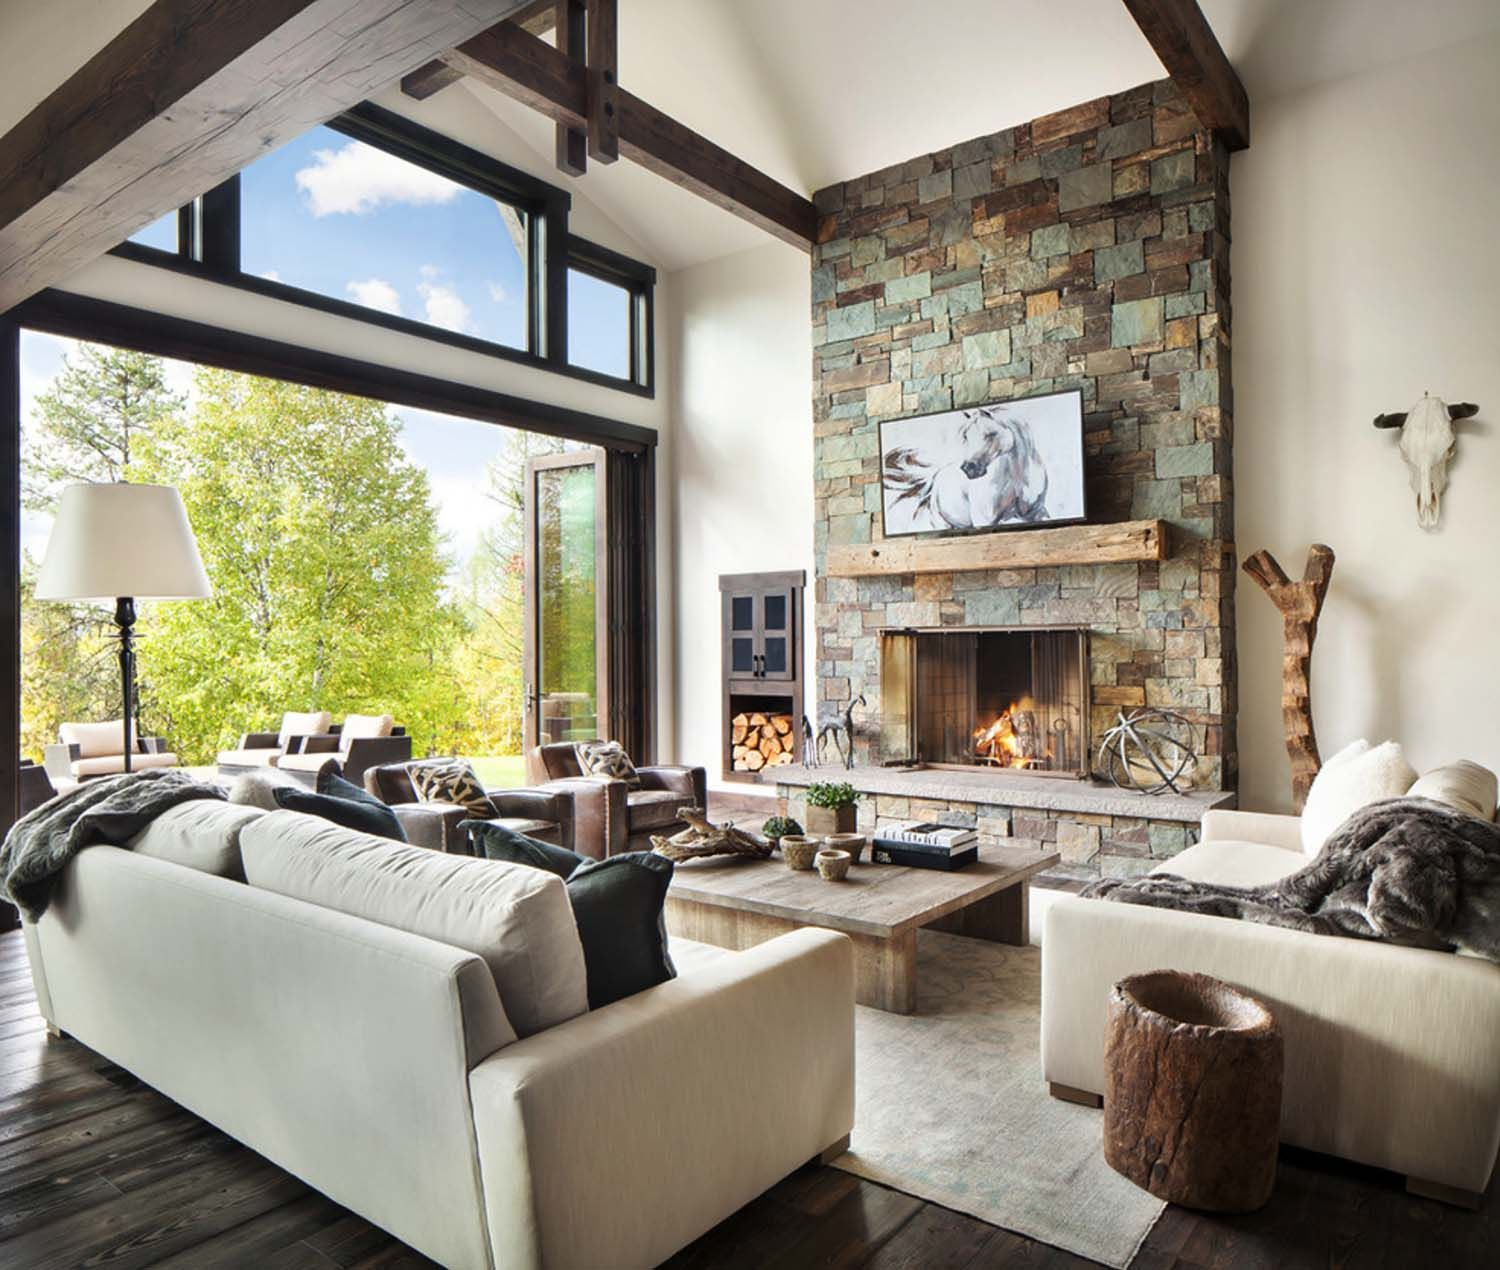 Rustic Interior Design Ideas Living Room: Rustic-modern Dwelling Nestled In The Northern Rocky